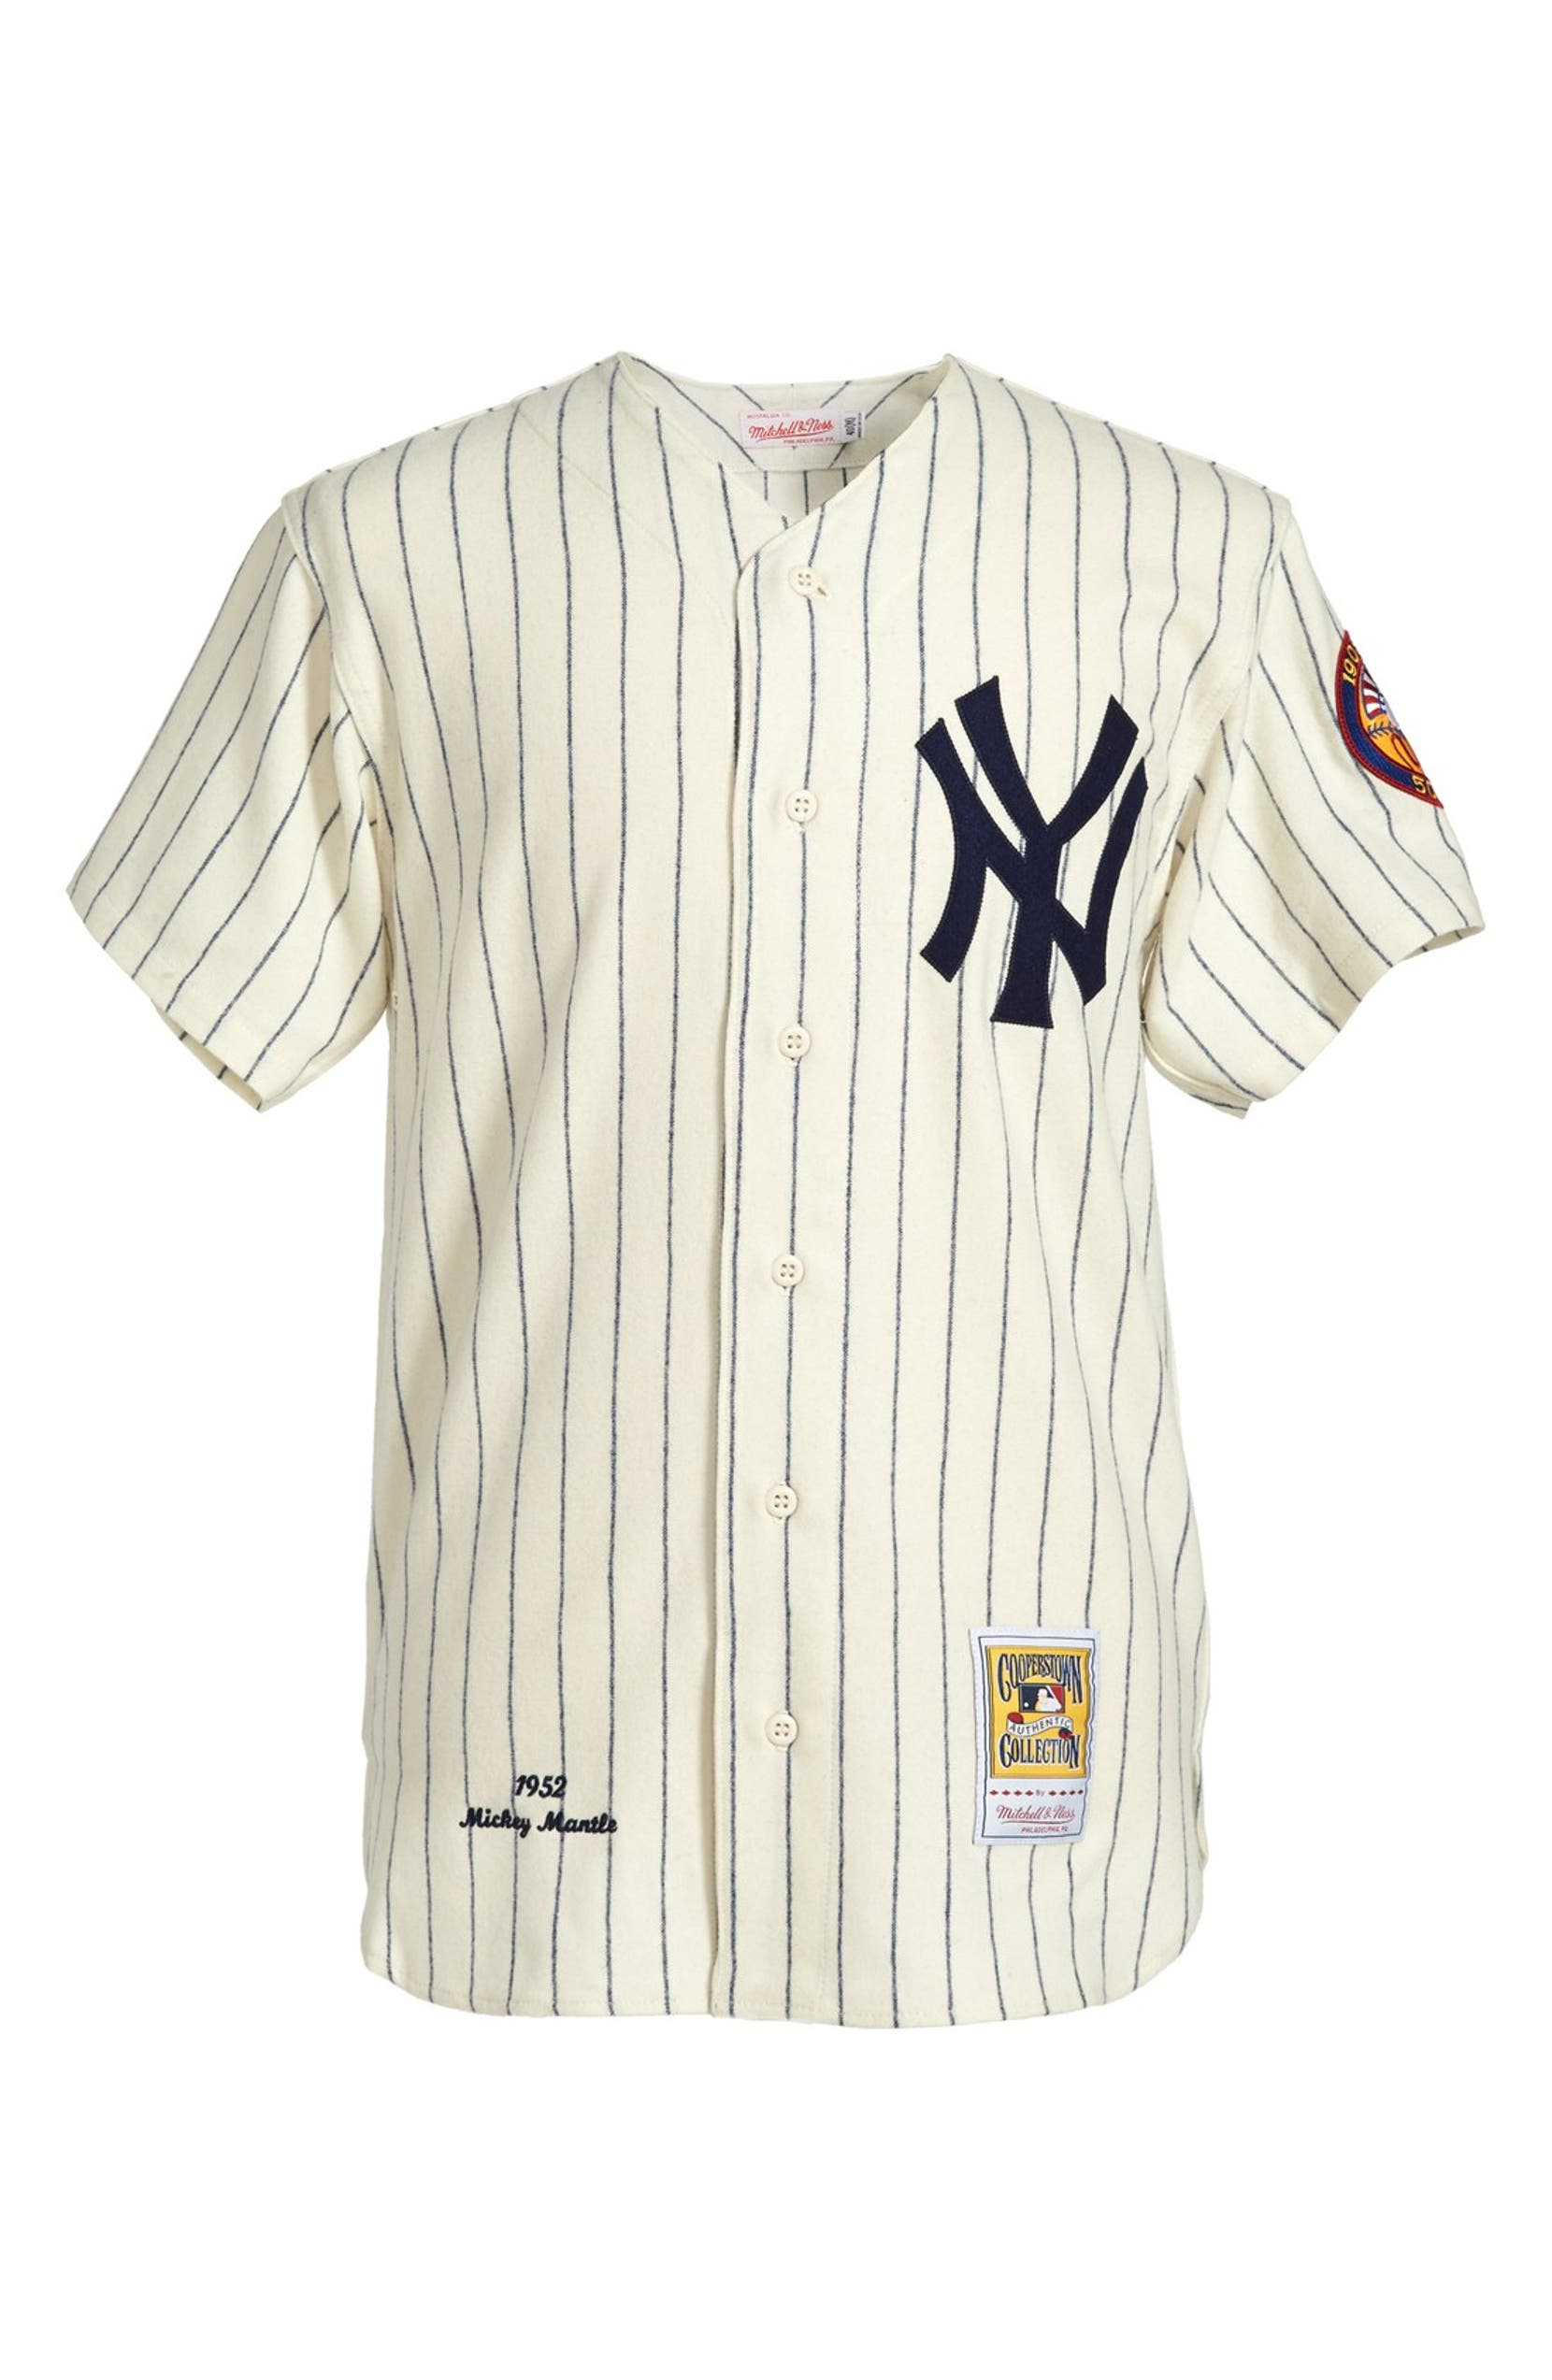 Mitchell   Ness  New York Yankees 1952 - Mickey Mantle Authentic  Home  Baseball Jersey  bd5182092